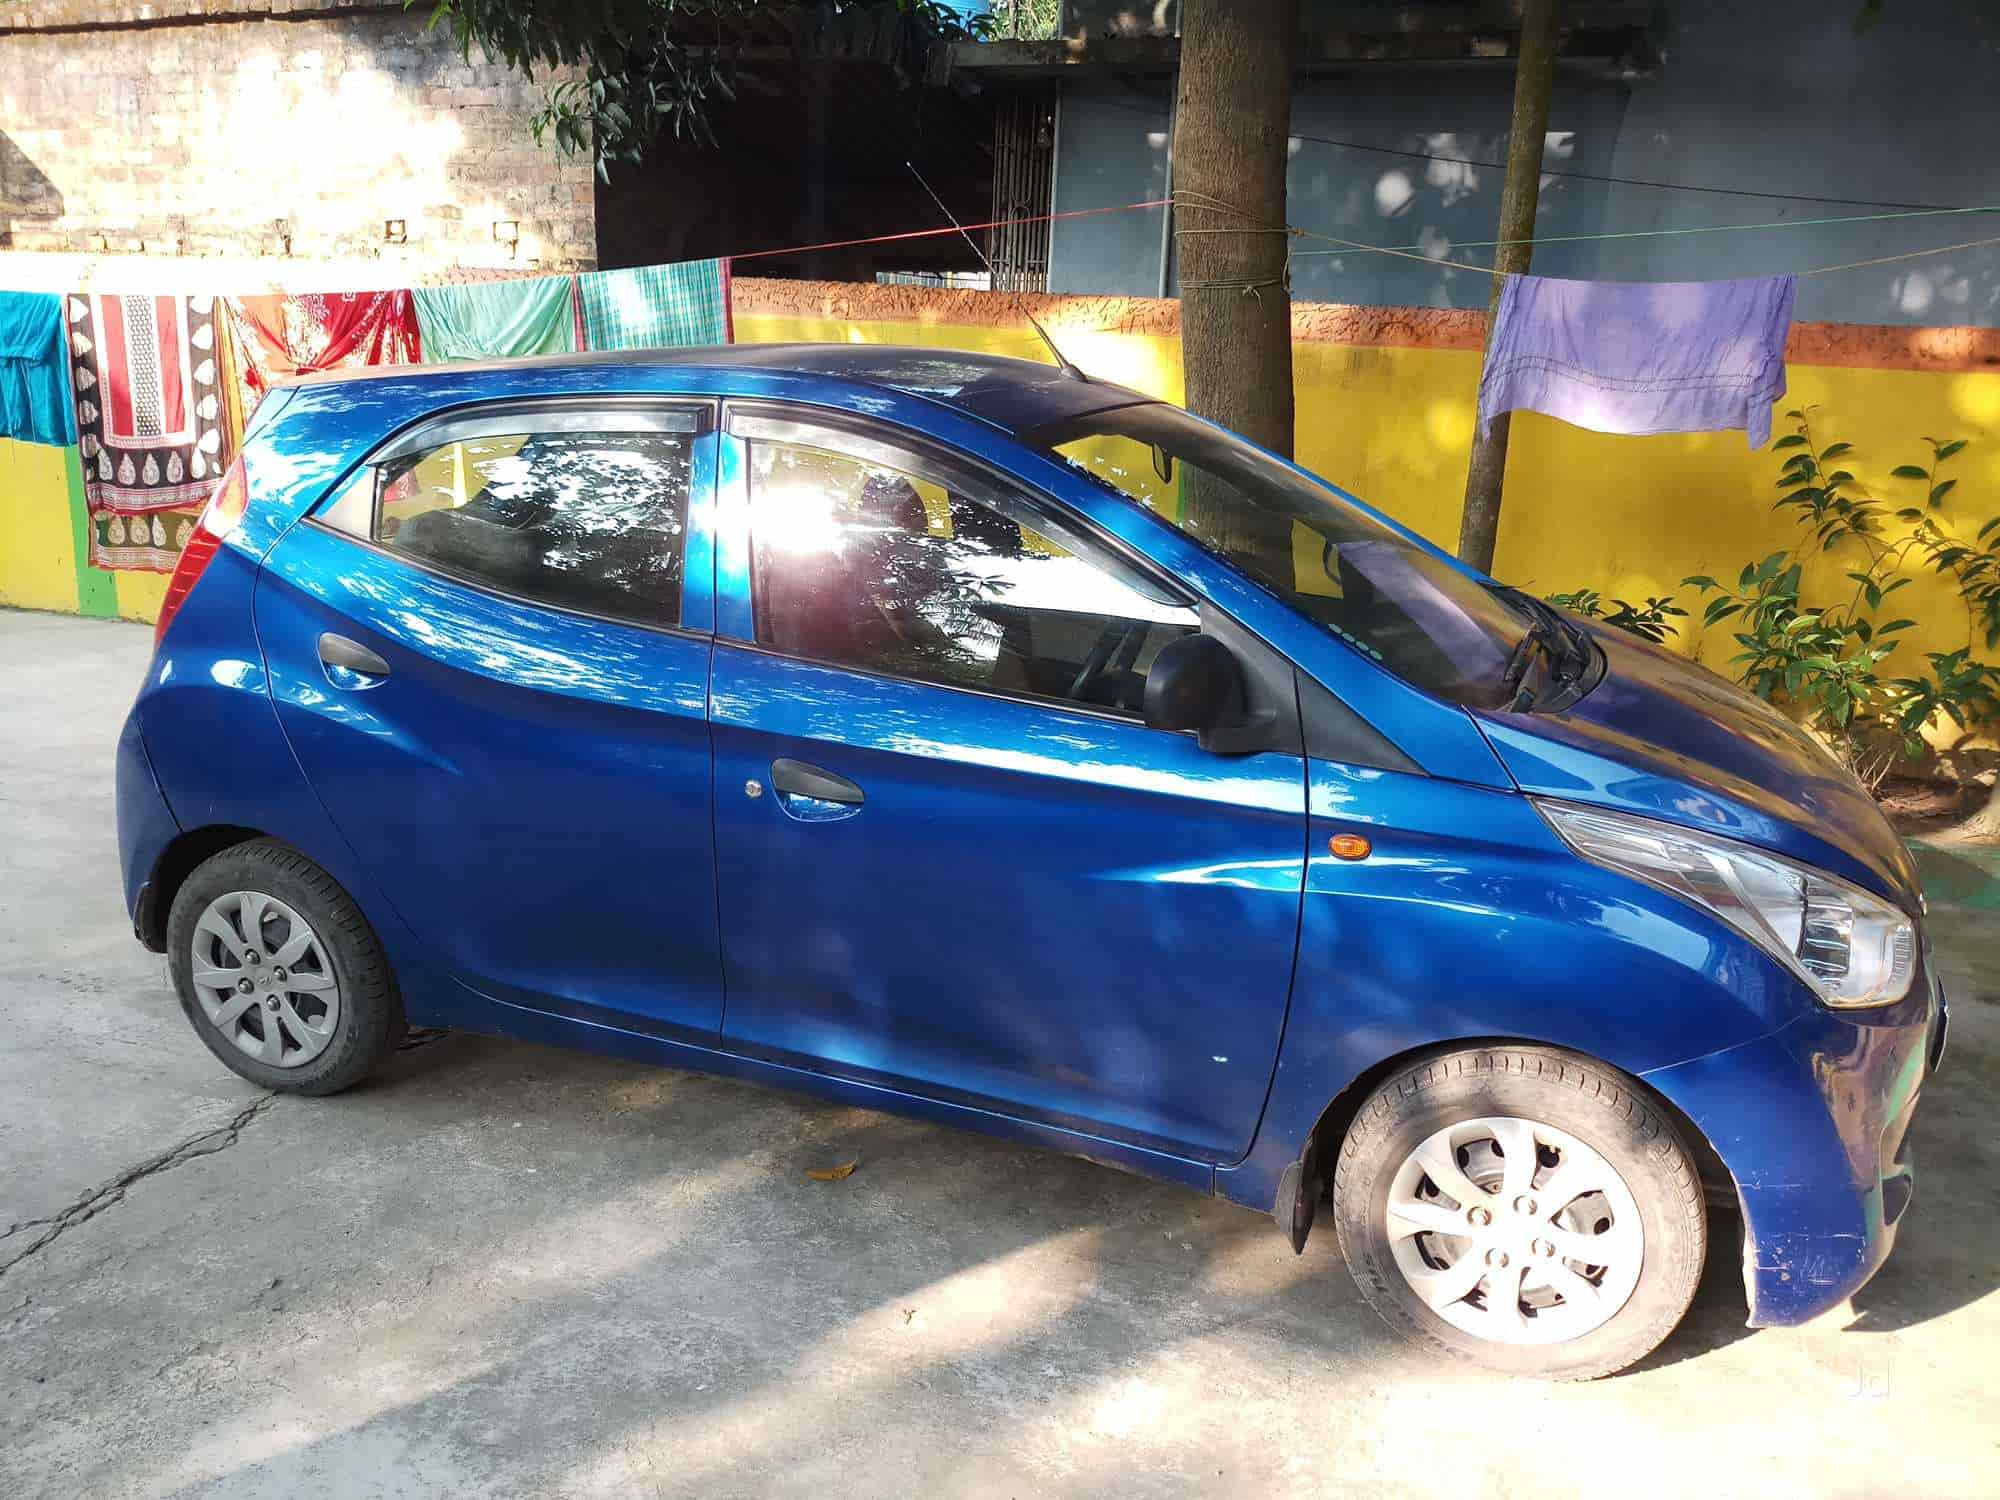 Top 20 Certified Used Car Dealers in Barasat - Best Second Hand Cars -  Justdial